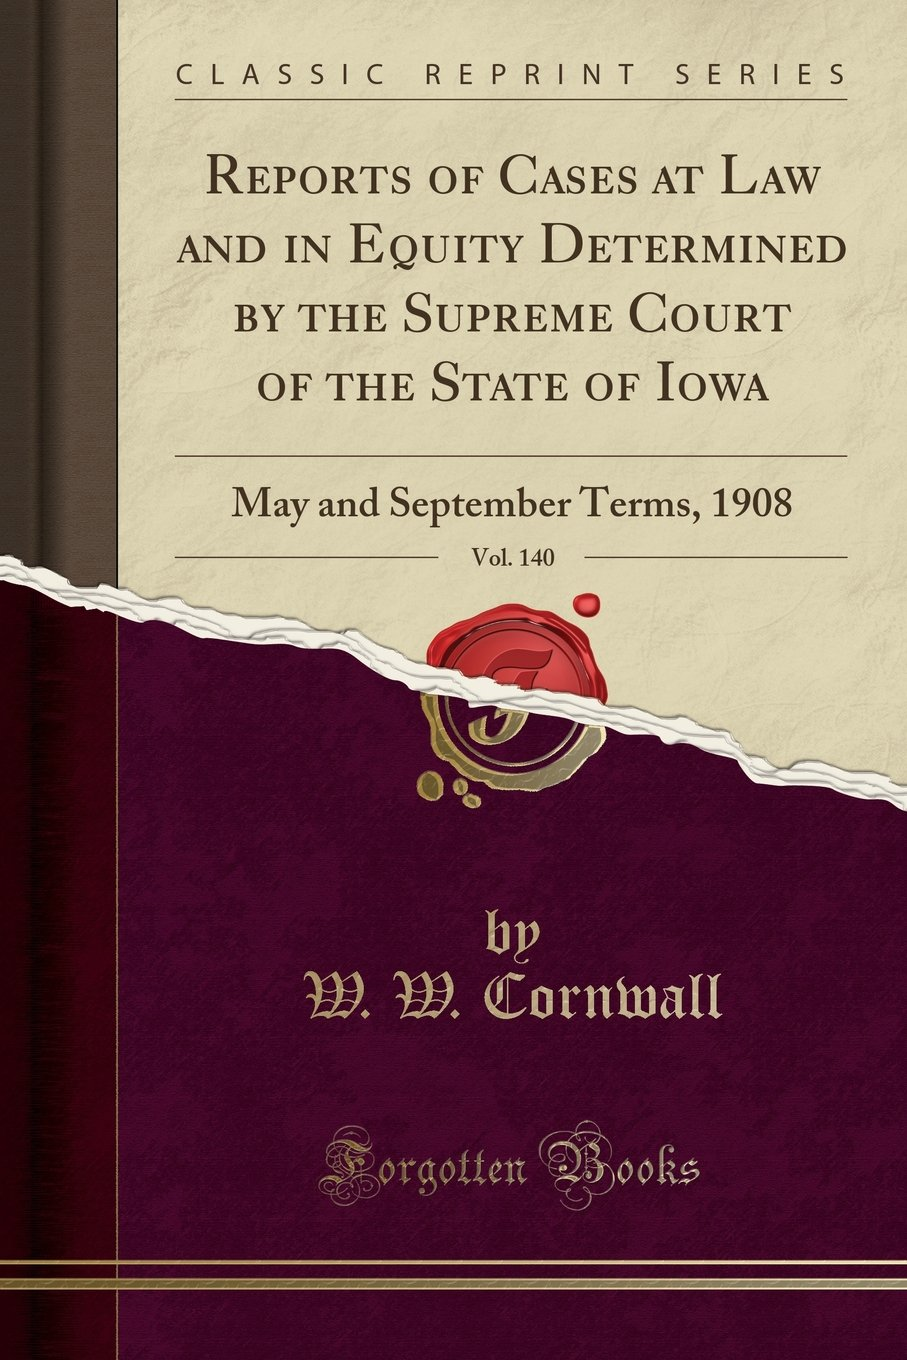 Reports of Cases at Law and in Equity Determined by the Supreme Court of the State of Iowa, Vol. 140: May and September Terms, 1908 (Classic Reprint) pdf epub